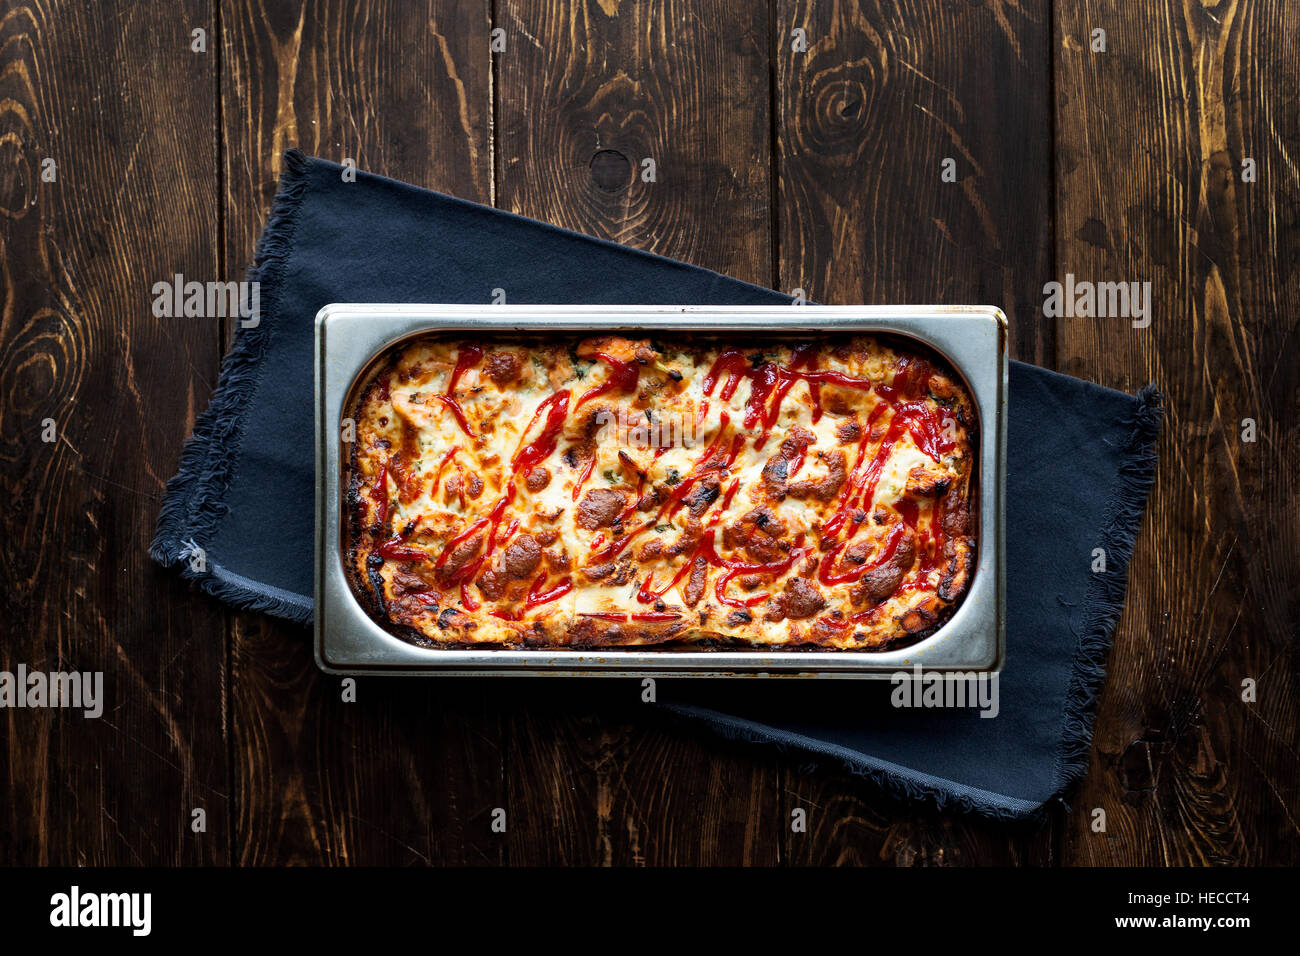 Italian Food. Hot tasty lasagna in ceramic casserole dish on Wooden Table - Stock Image